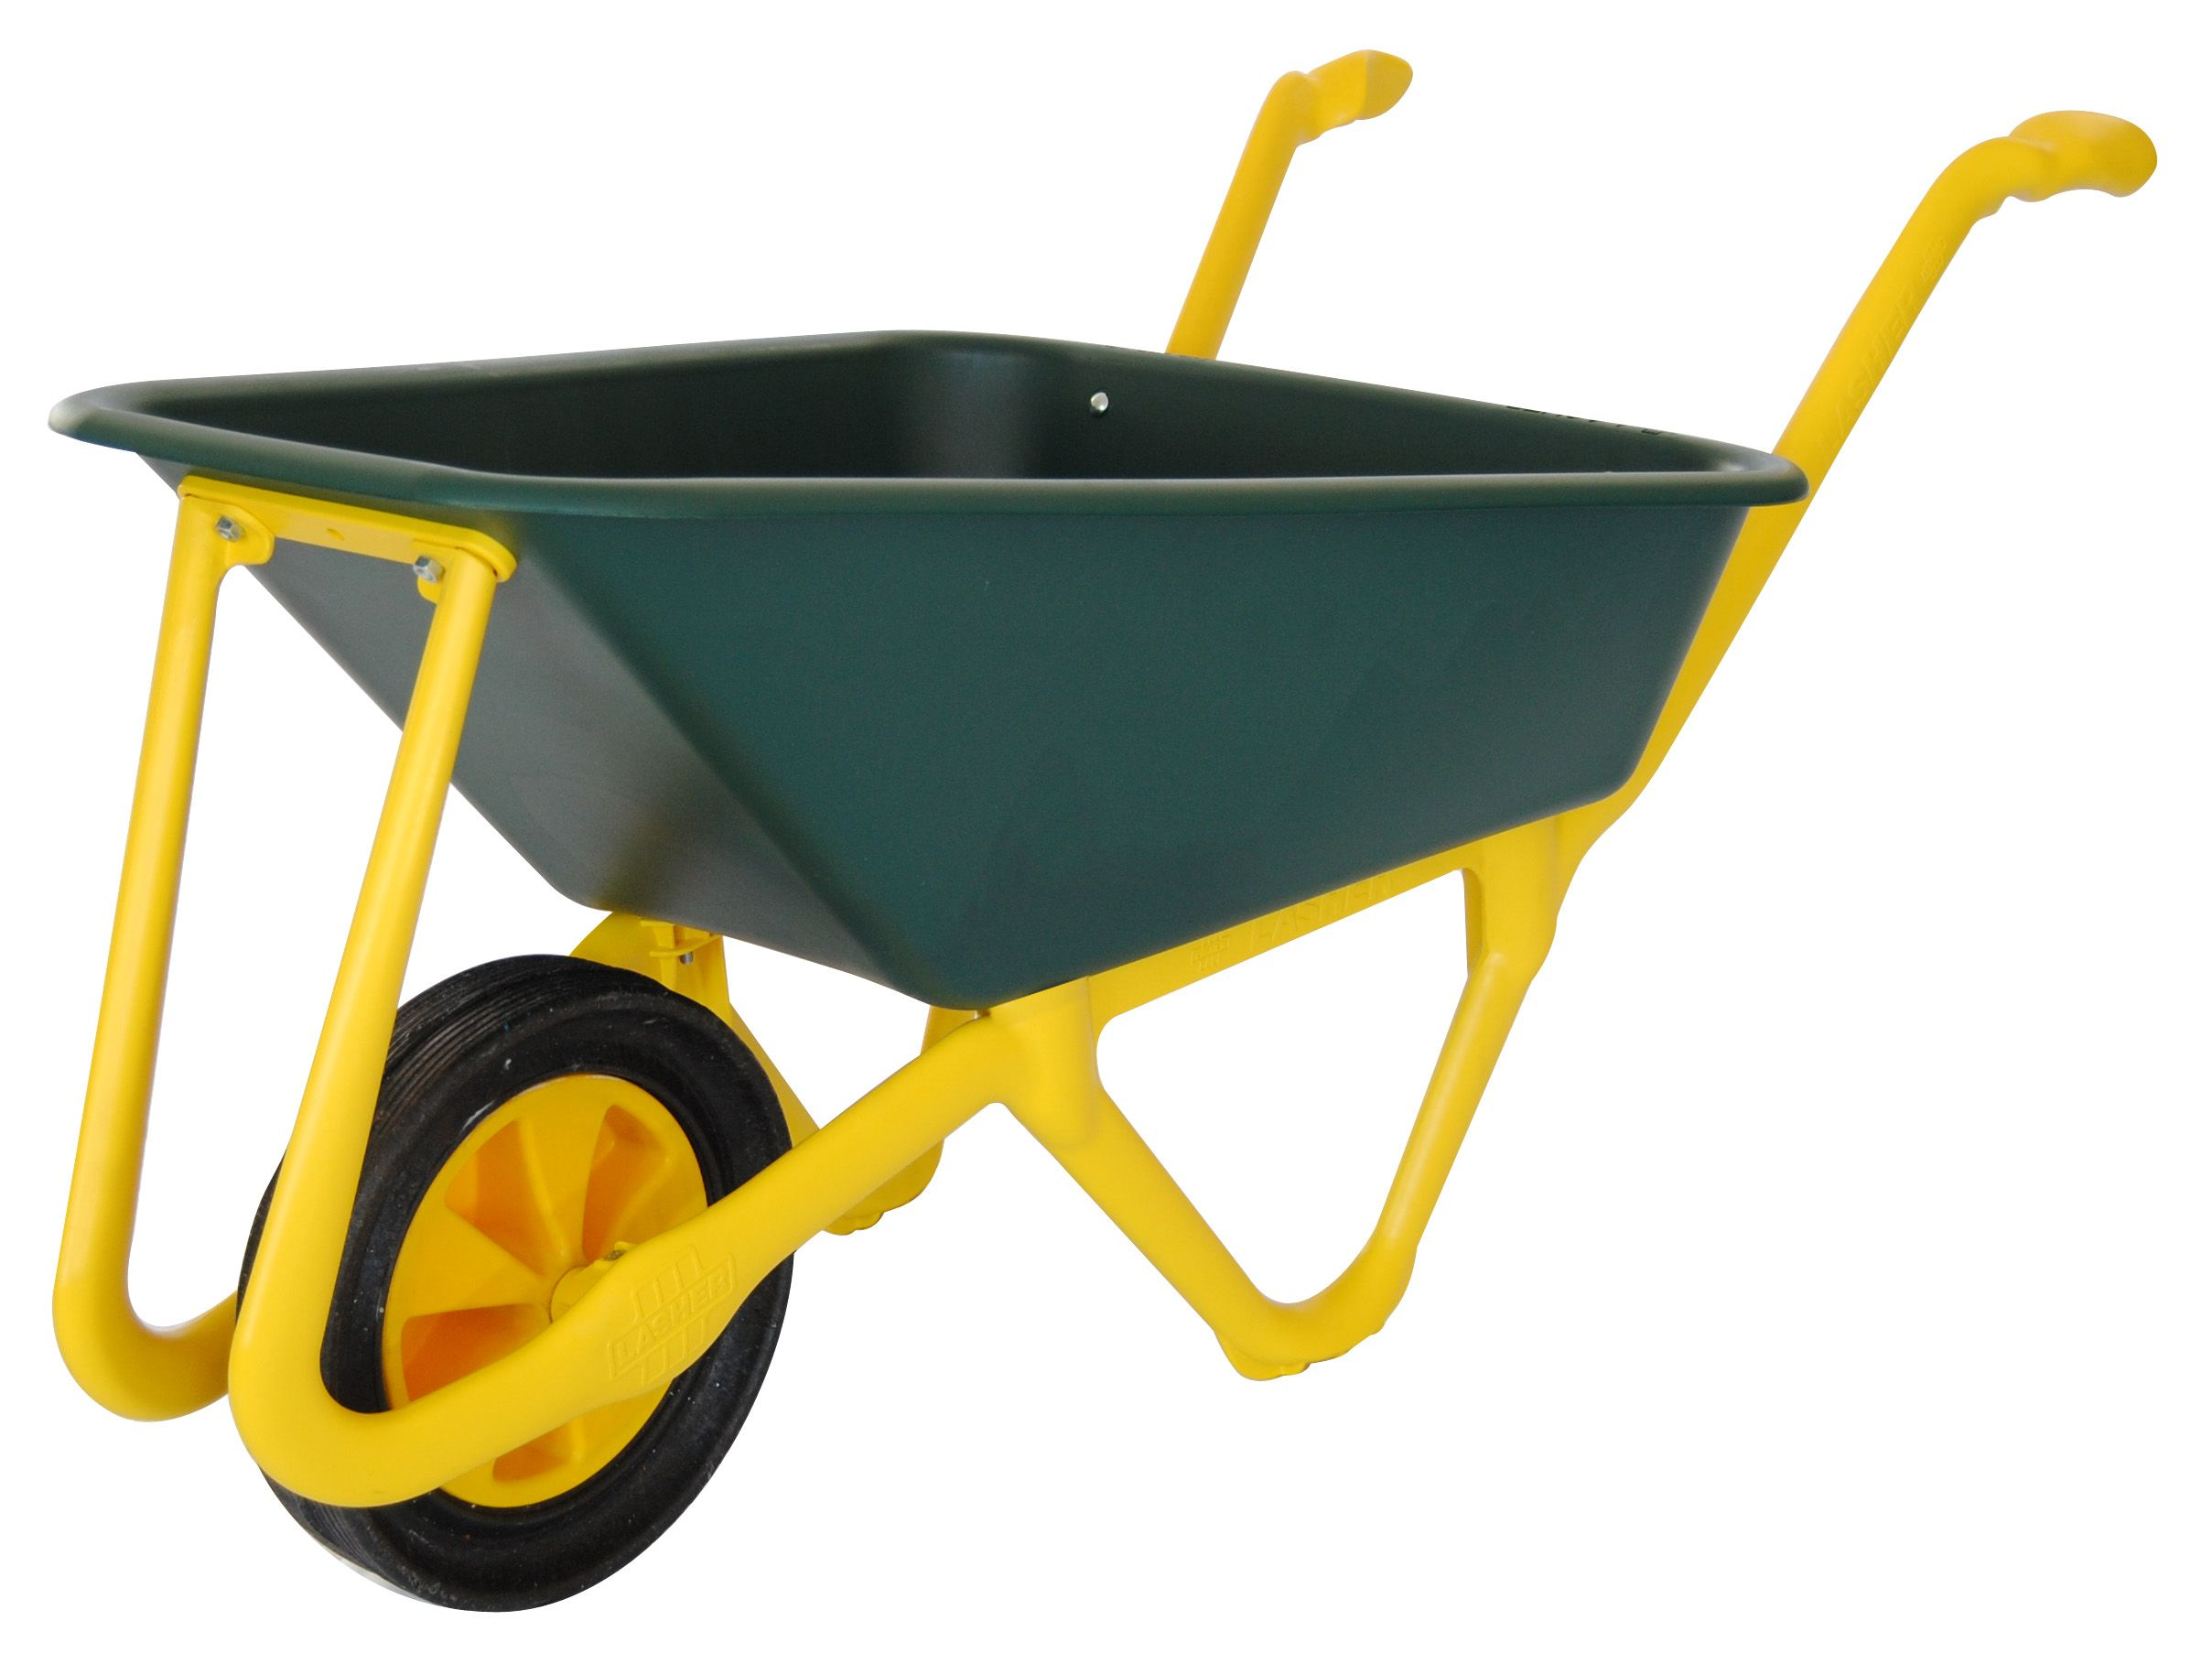 Unique New Design Poly Wheelbarrow By Lasher Tools Check